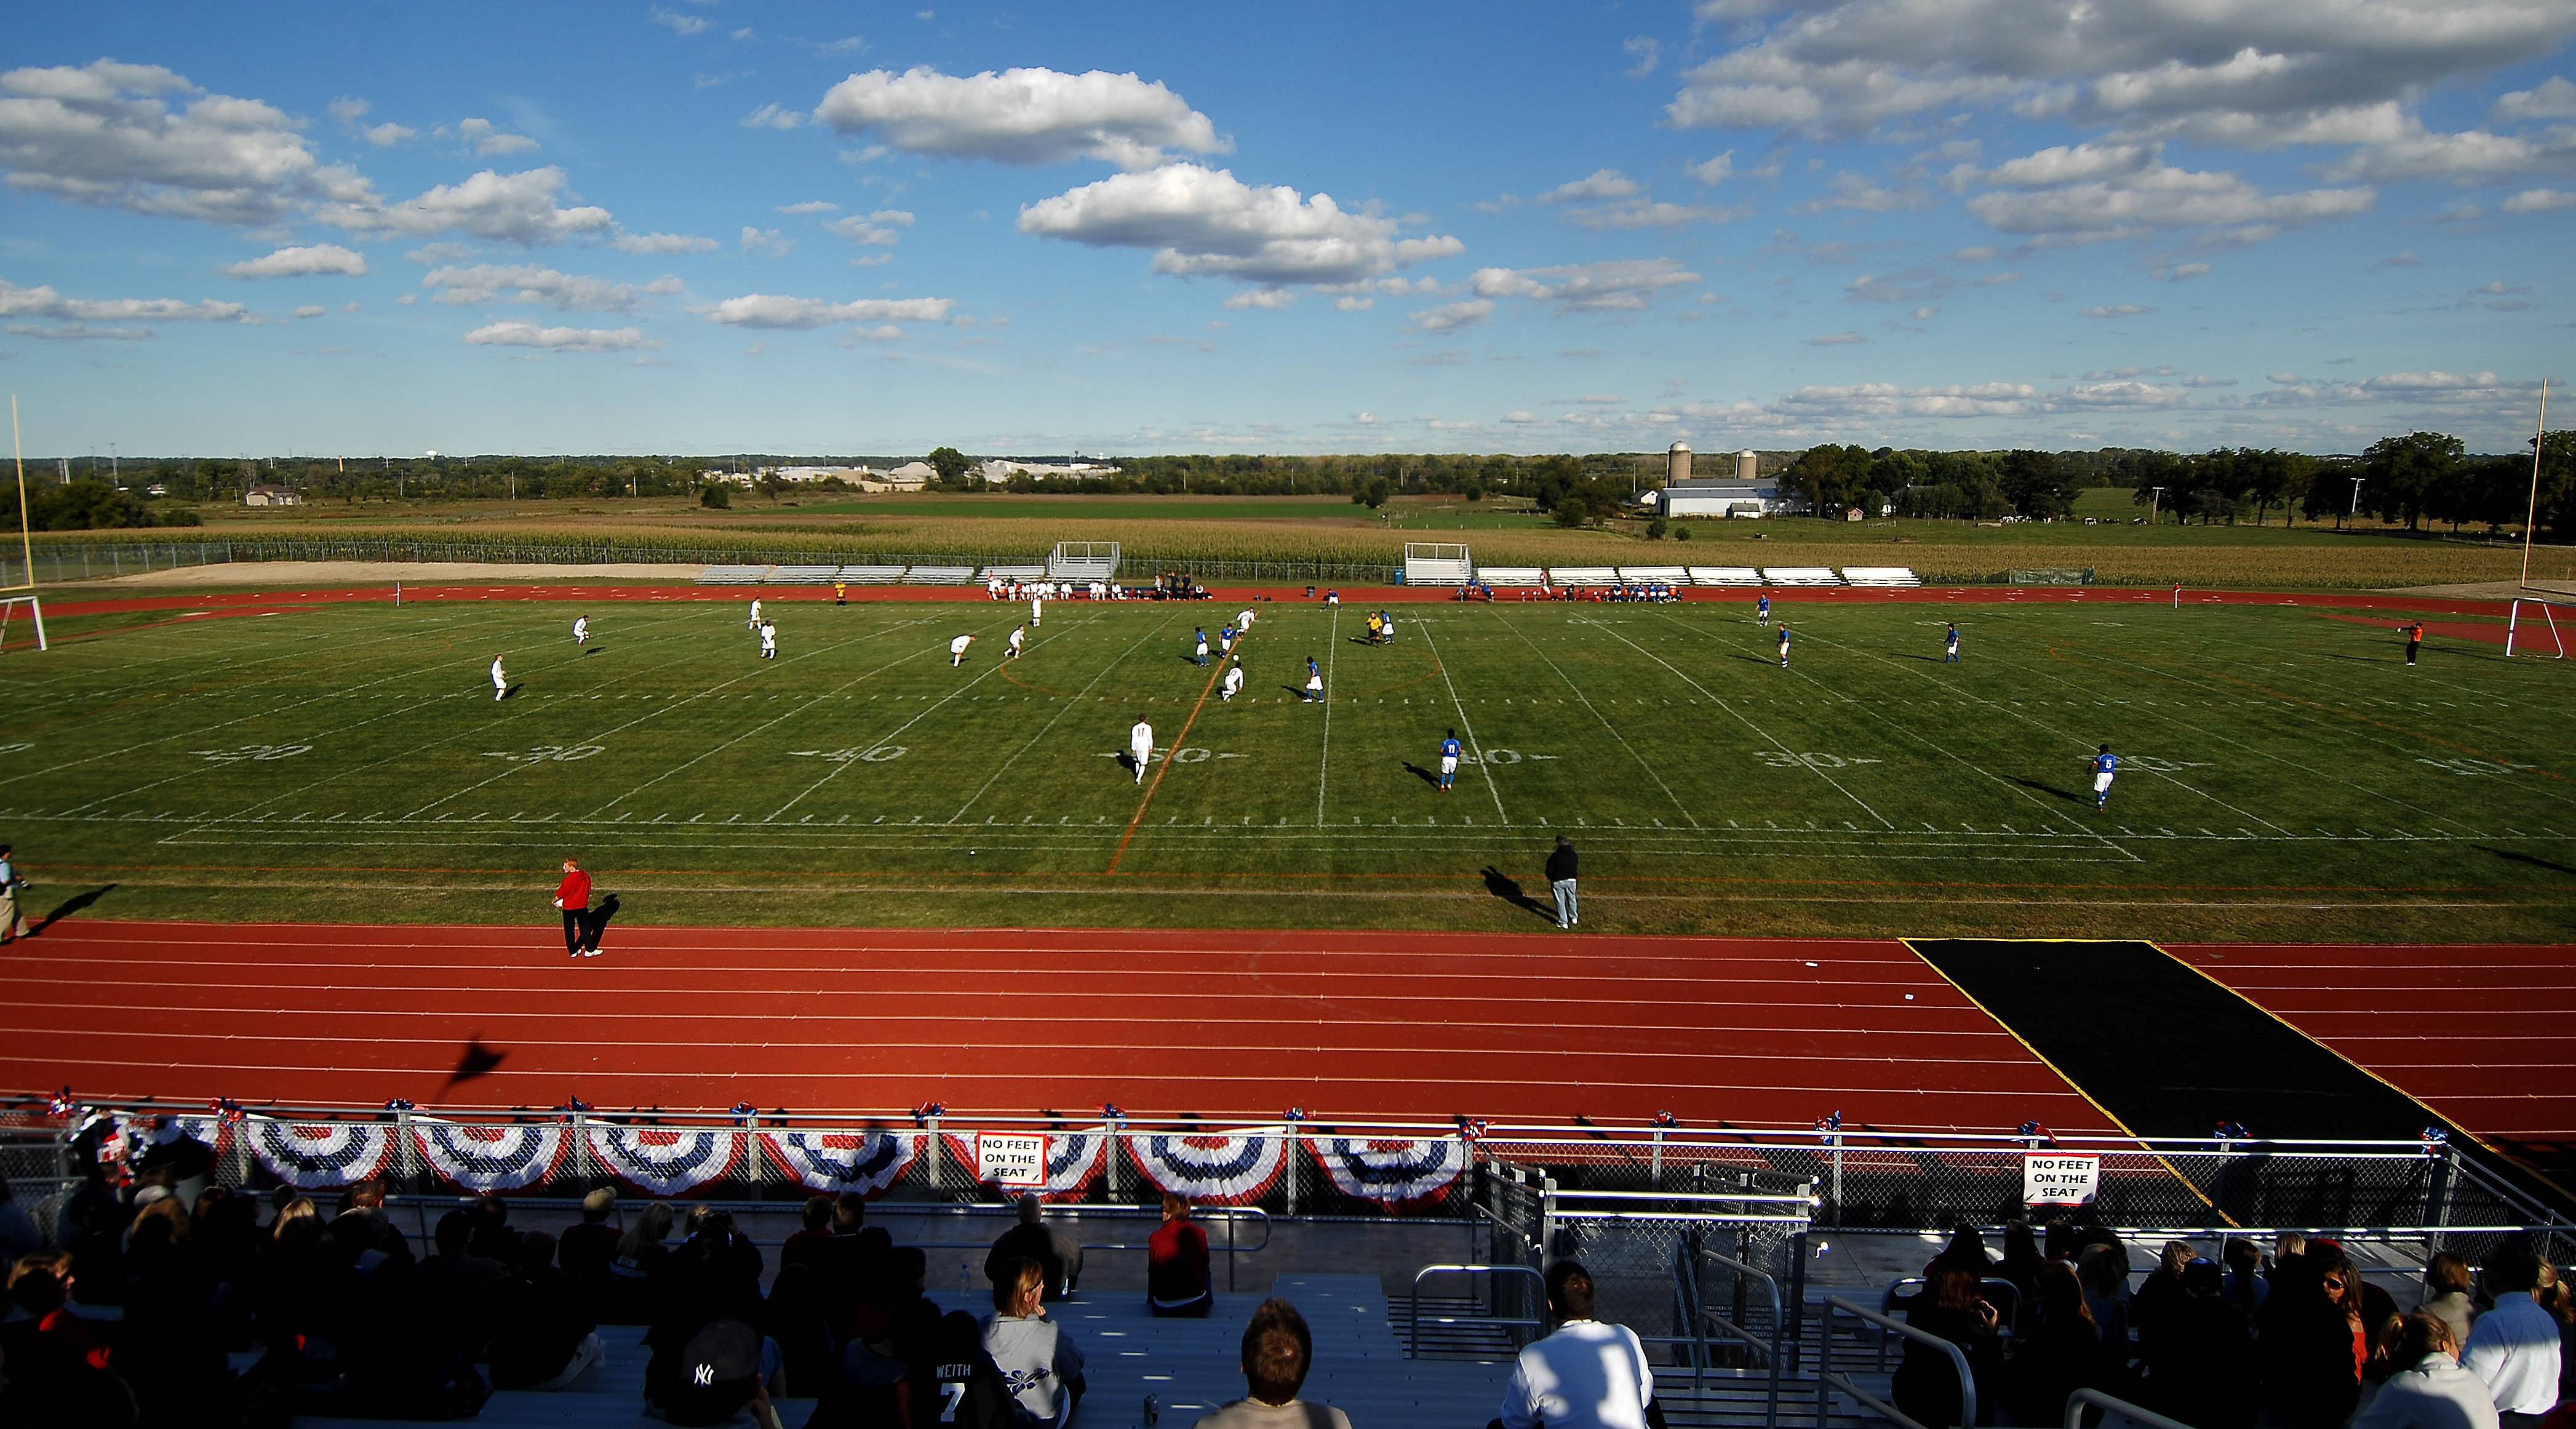 Hoffman Estates kicks off against South Elgin during the first soccer game at South Elgin High School's new stadium when it opened in 2011.